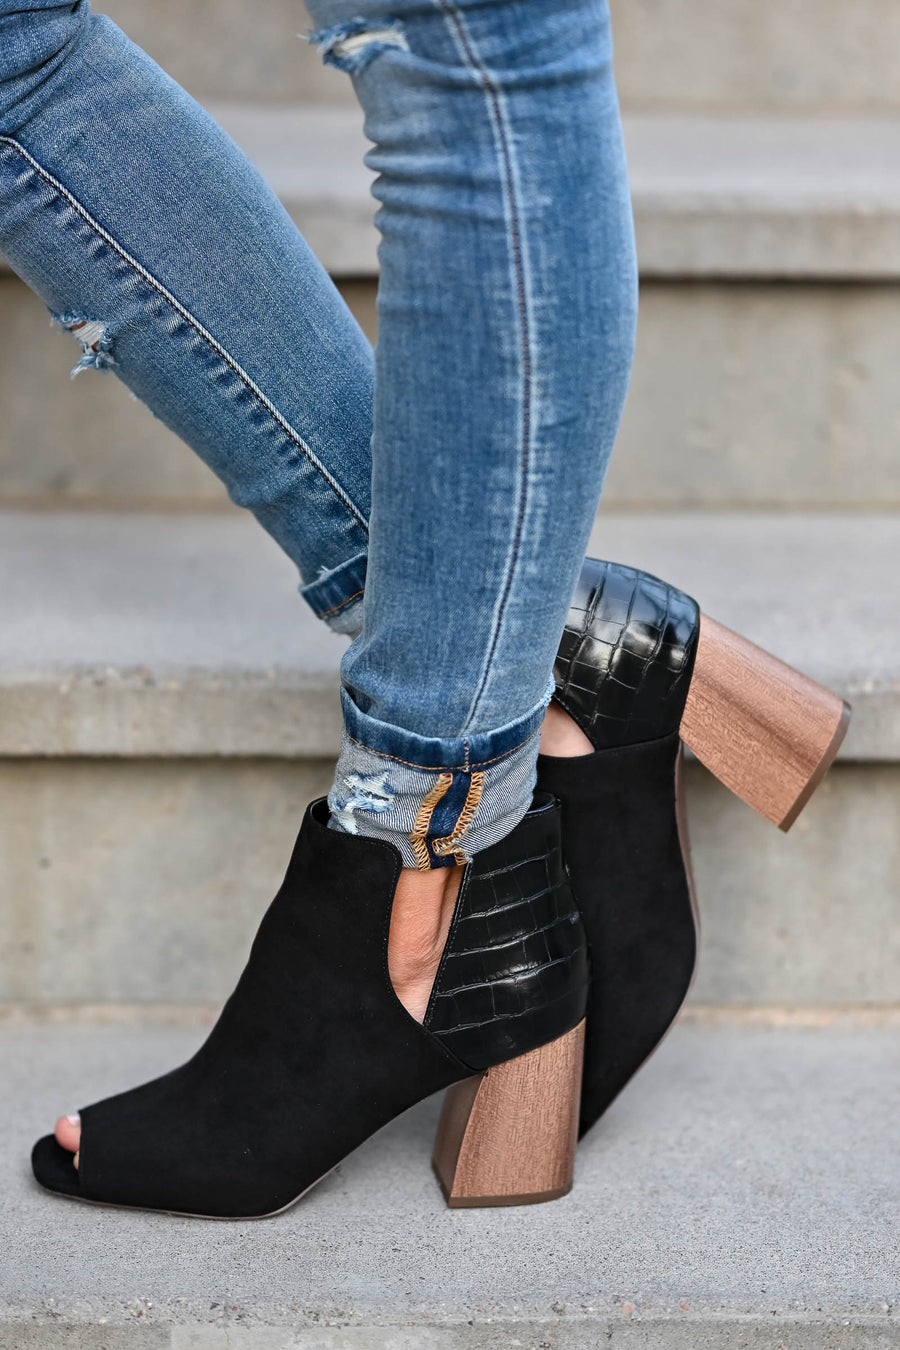 Step On Out Peep Toe Booties - Black women's peep toe booties featuring textured contrast, side cutout details, and chunky block heel with wooden appearance closet candy side